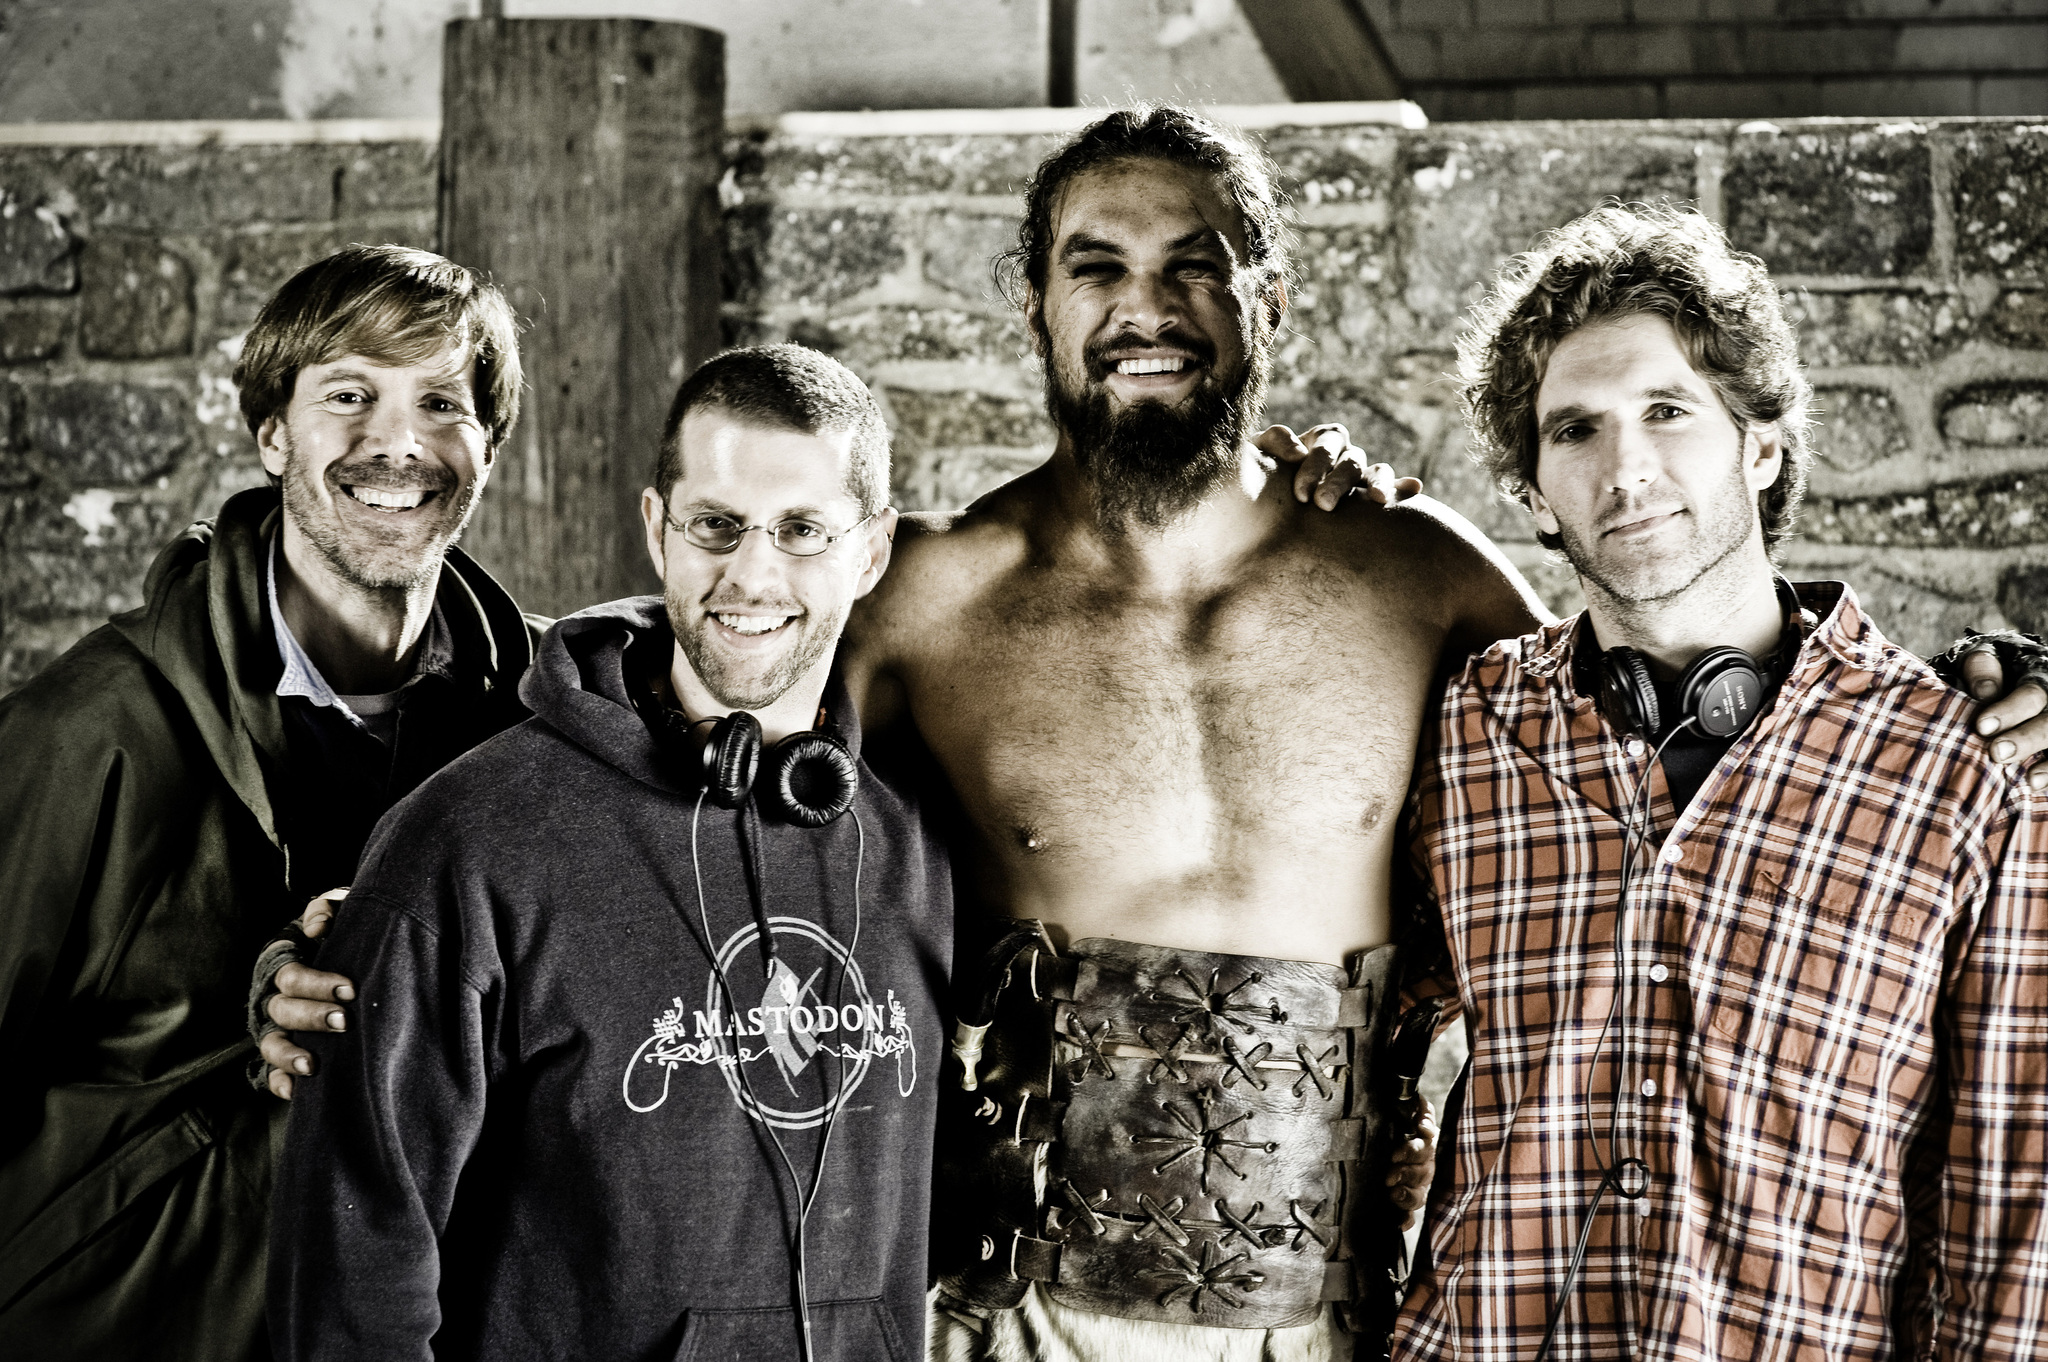 Frank Doelger, Jason Momoa, David Benioff, and D.B. Weiss in Game of Thrones (2011)